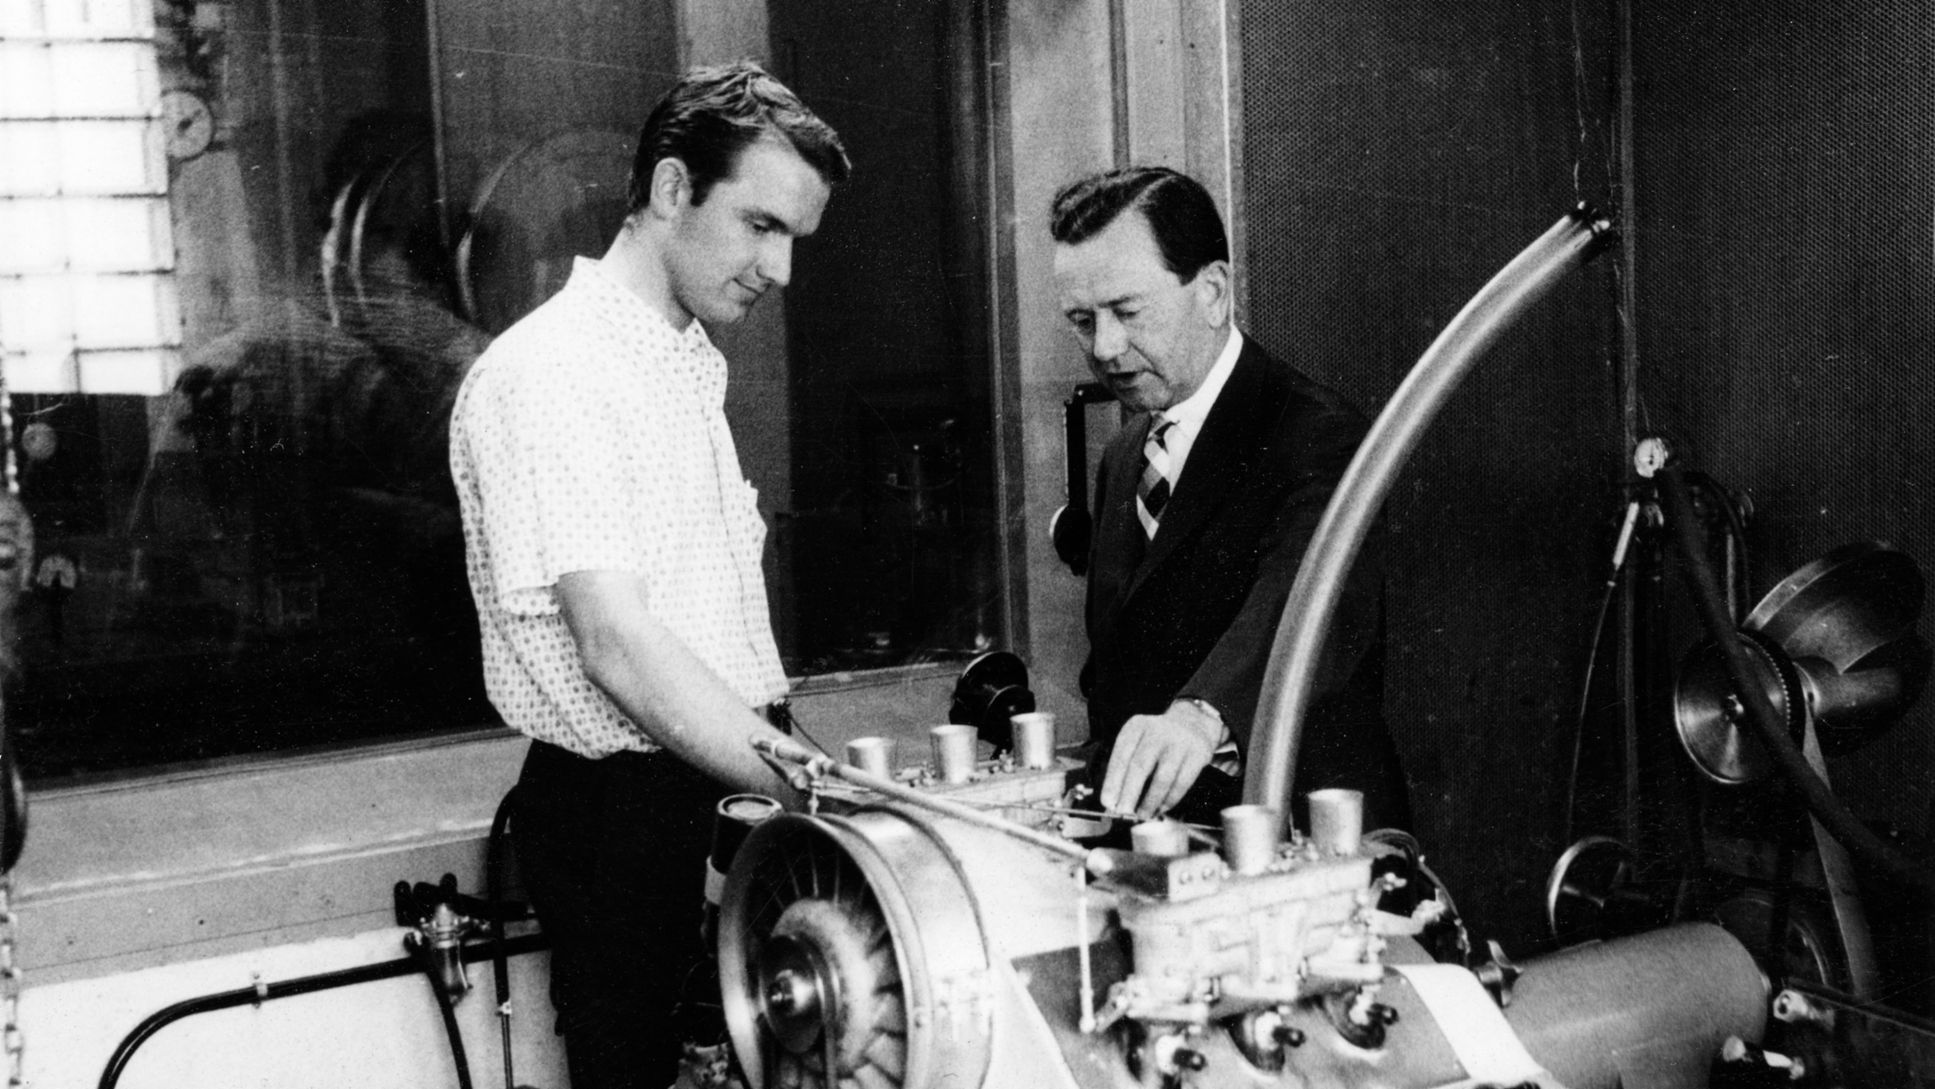 Ferdinand Piëch (left) and Ferry Porsche next to the engine of the Type 718/2 of the Porsche 901, approx. 1963, Porsche AG